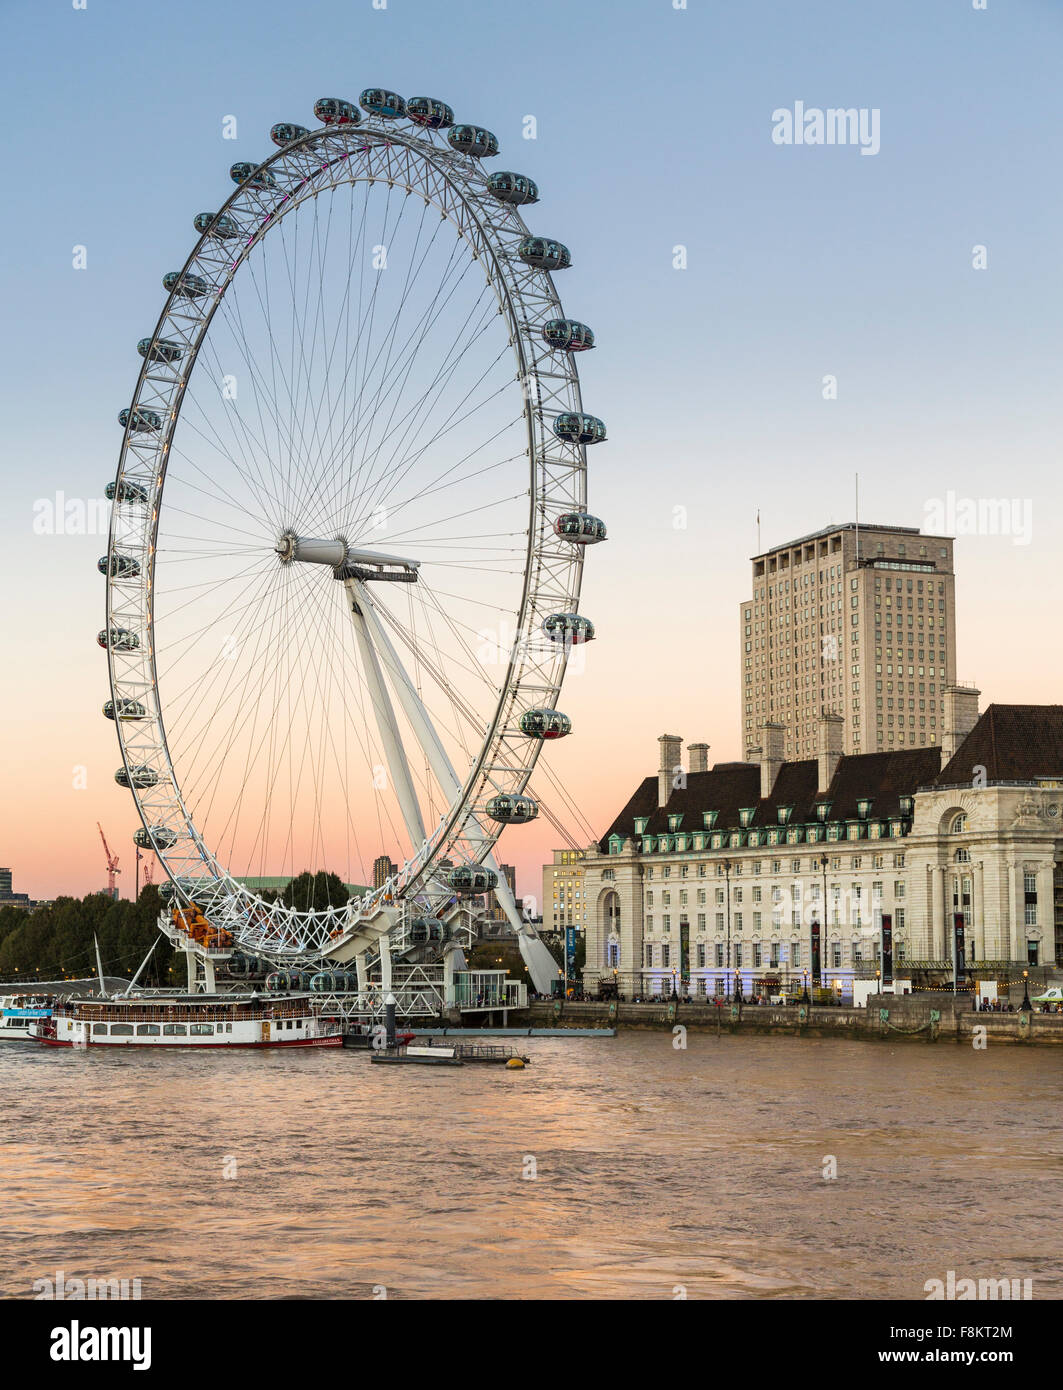 London Eye or Millennium Wheel on South Bank of River Thames in London England, UK - Stock Image